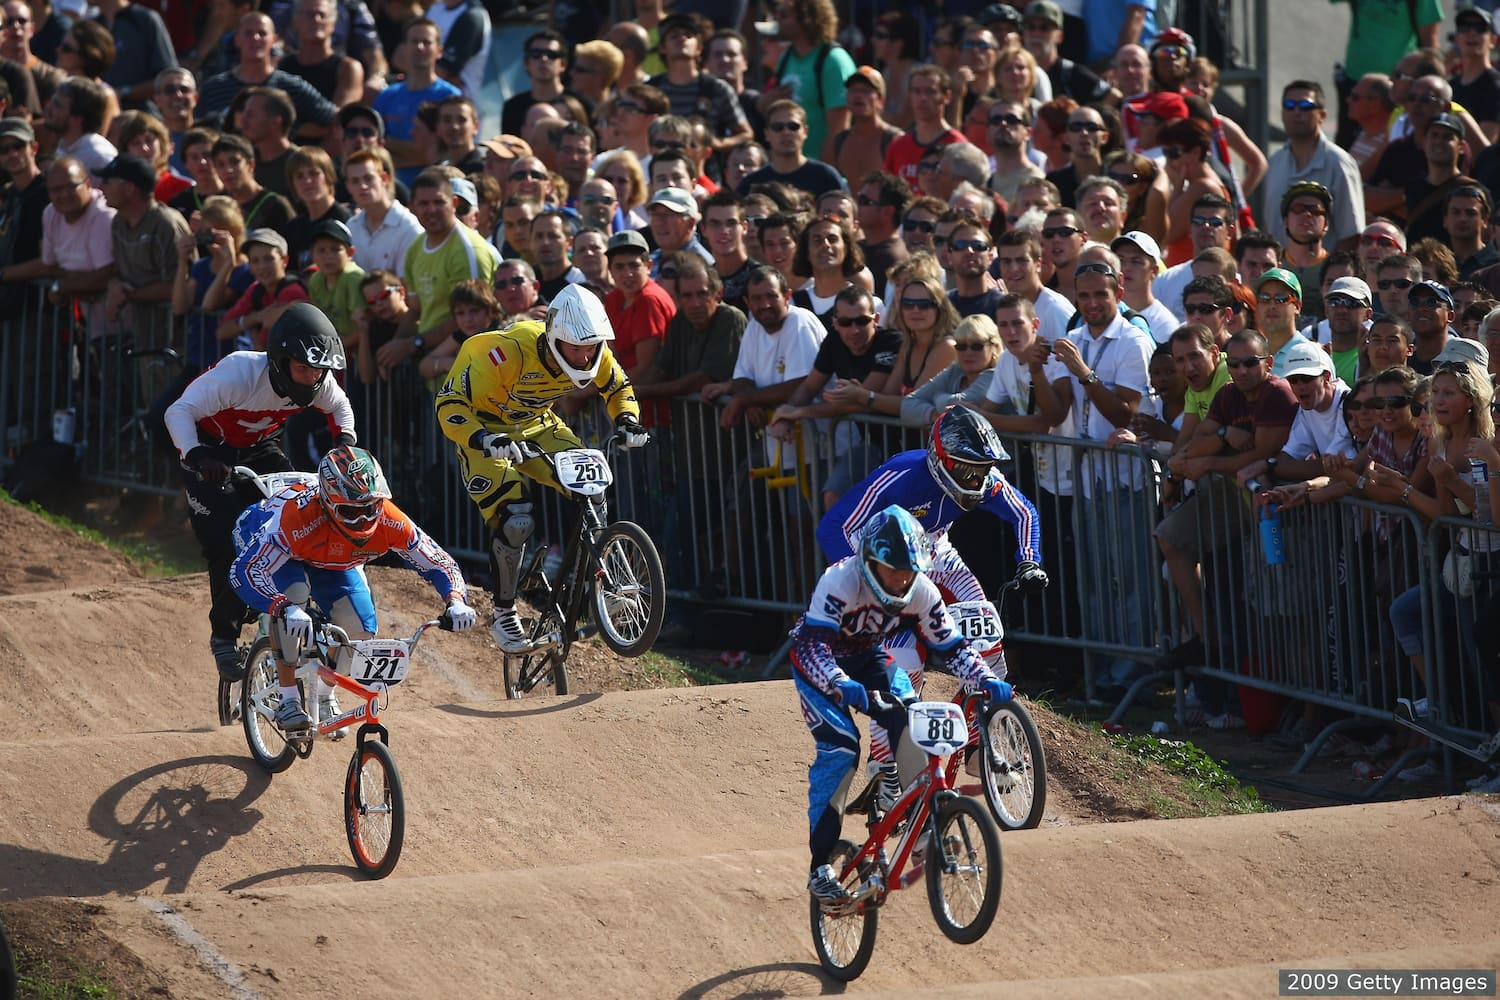 leads home in the men's elite quarterfinals during the UCI BMX Supercross World Cup at Roc d'Azur Frejus on October 10, 2009 in Frejus, France.